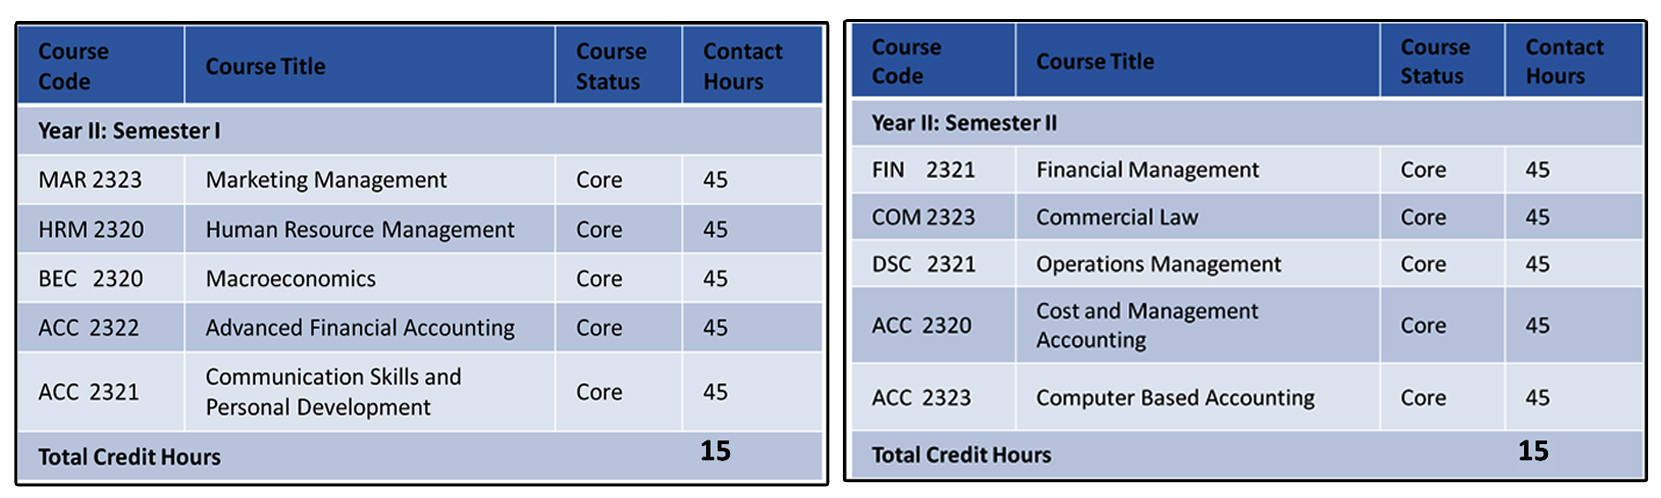 Second -Fourth Years -Accounting specialization